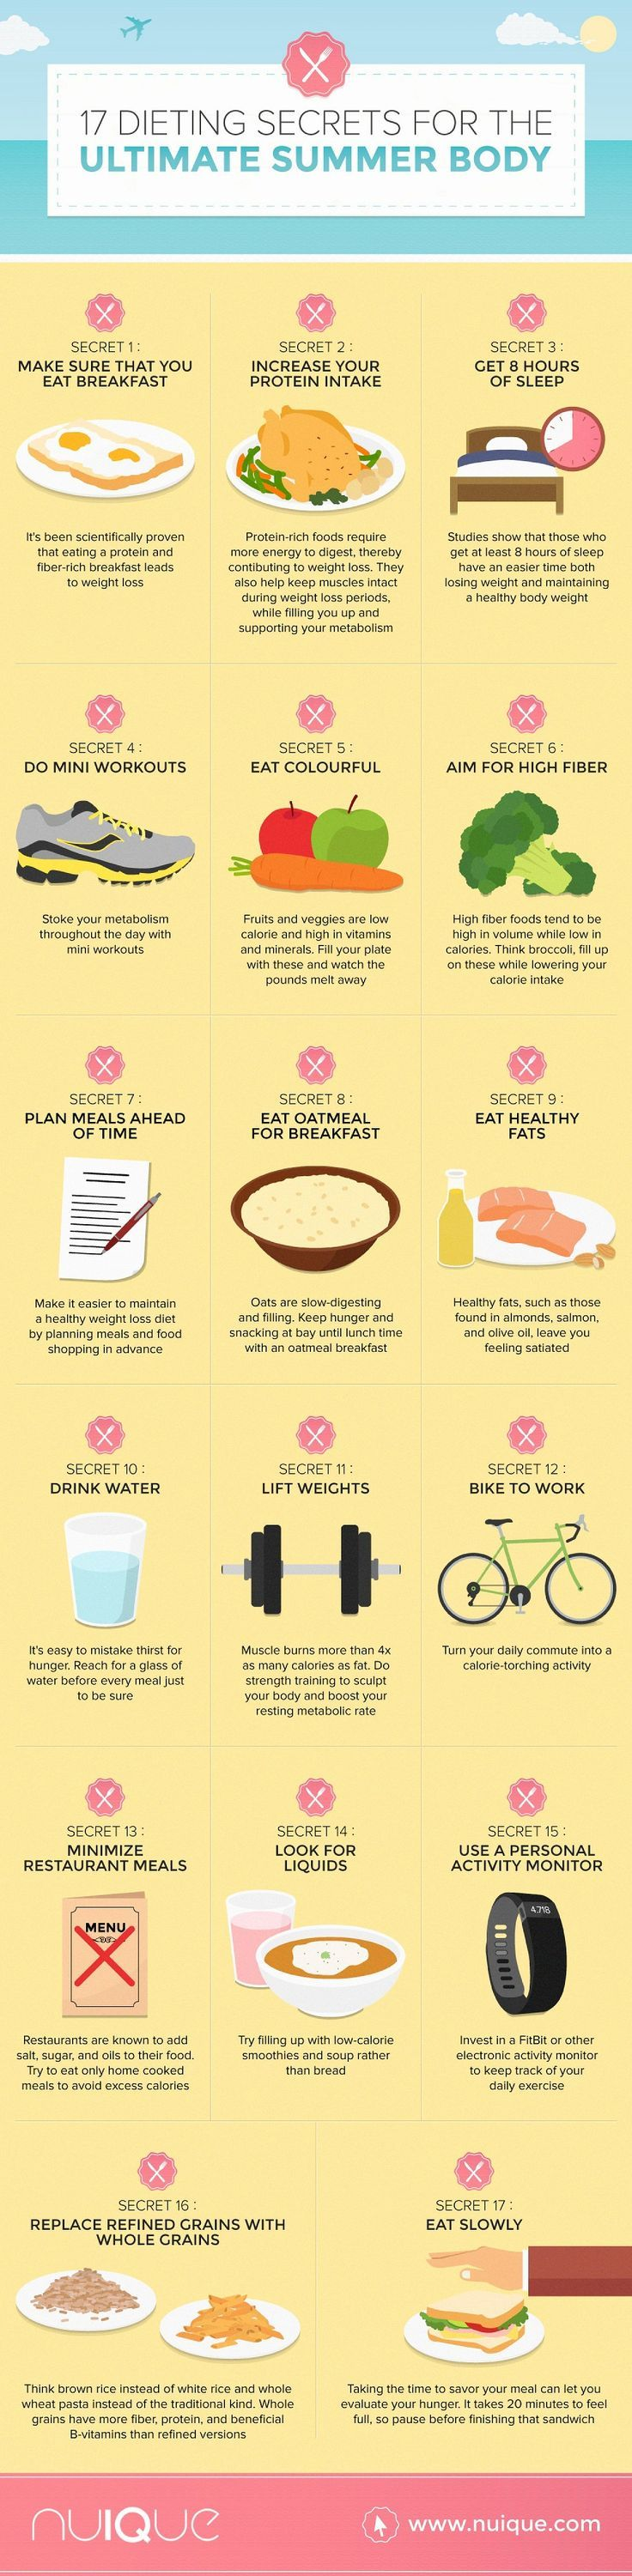 Foods to avoid if you want to lose fat image 7